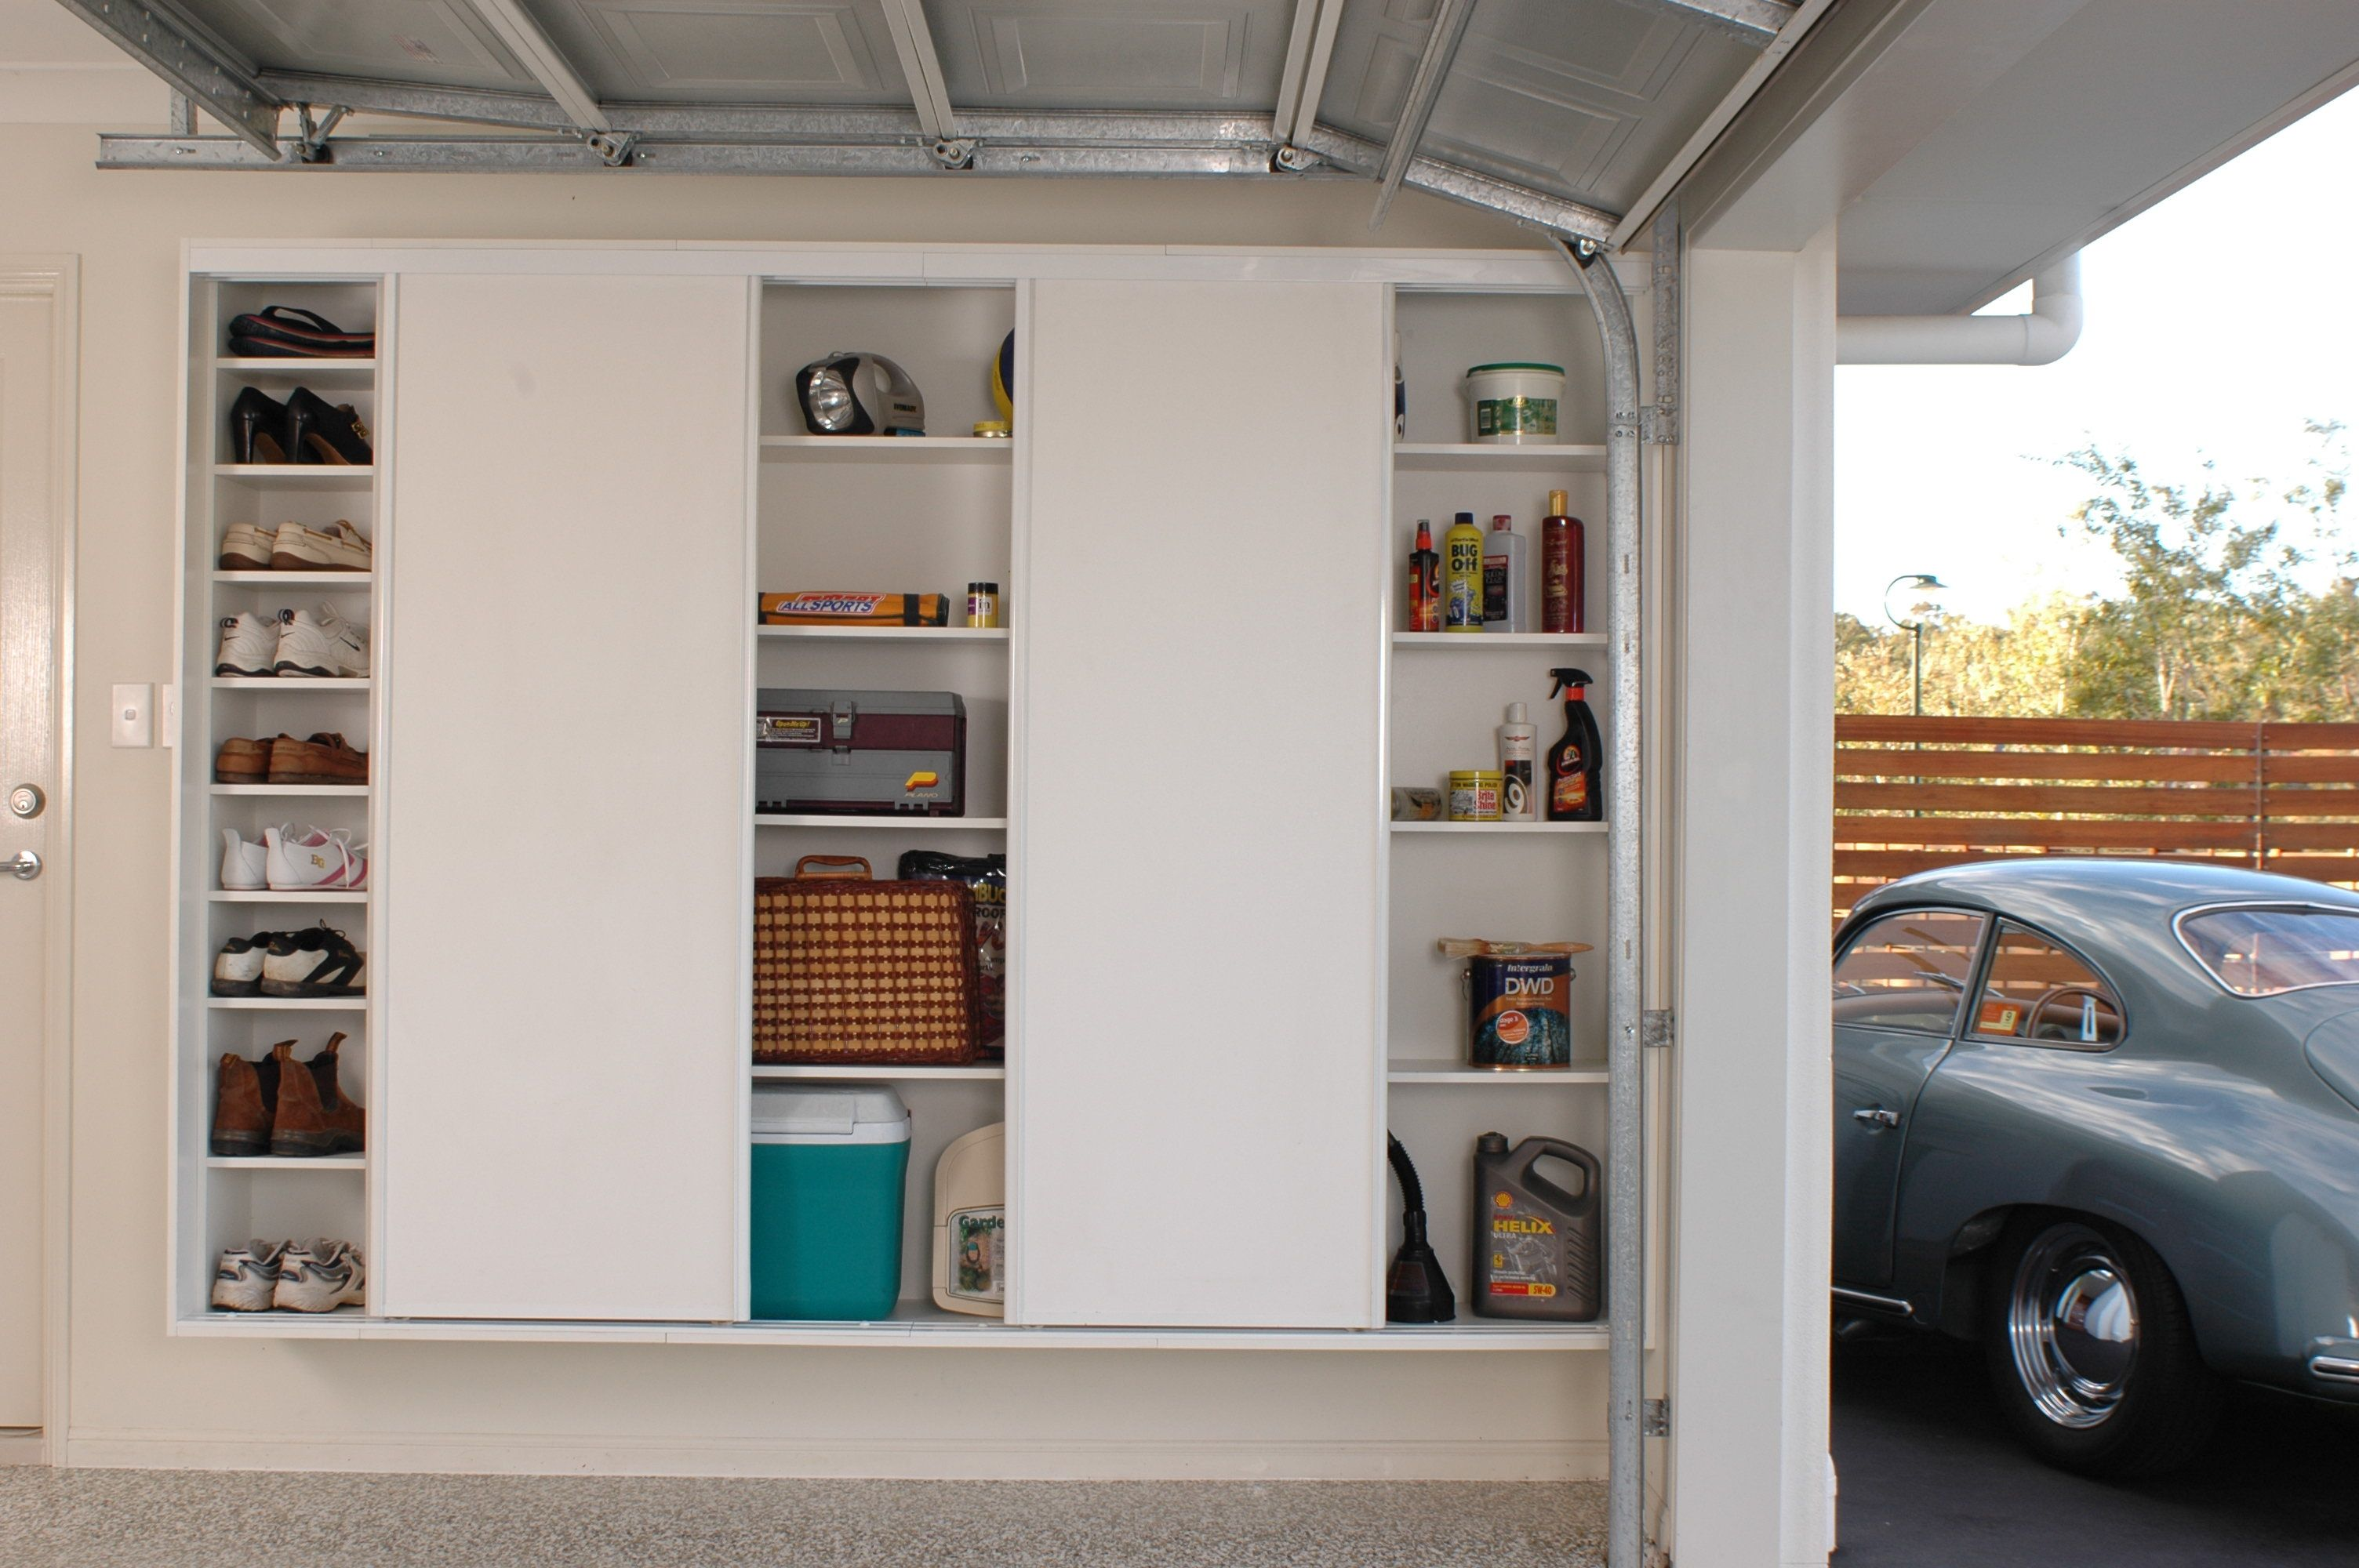 Storage Units Sunshine Coast Slimline Built In Cupboards With Sliding Doors For Ease Of